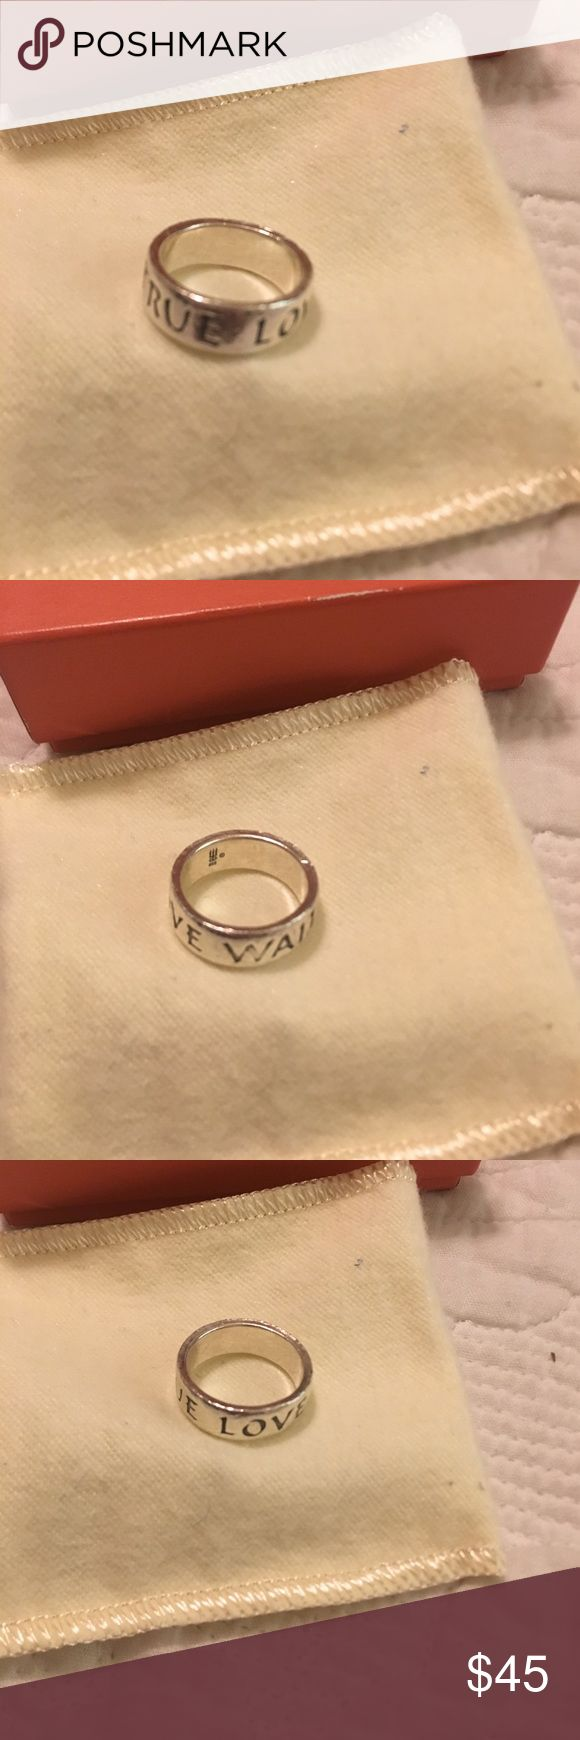 James Avery true love waits Ring Sterling silver James Avery Jewelry Rings